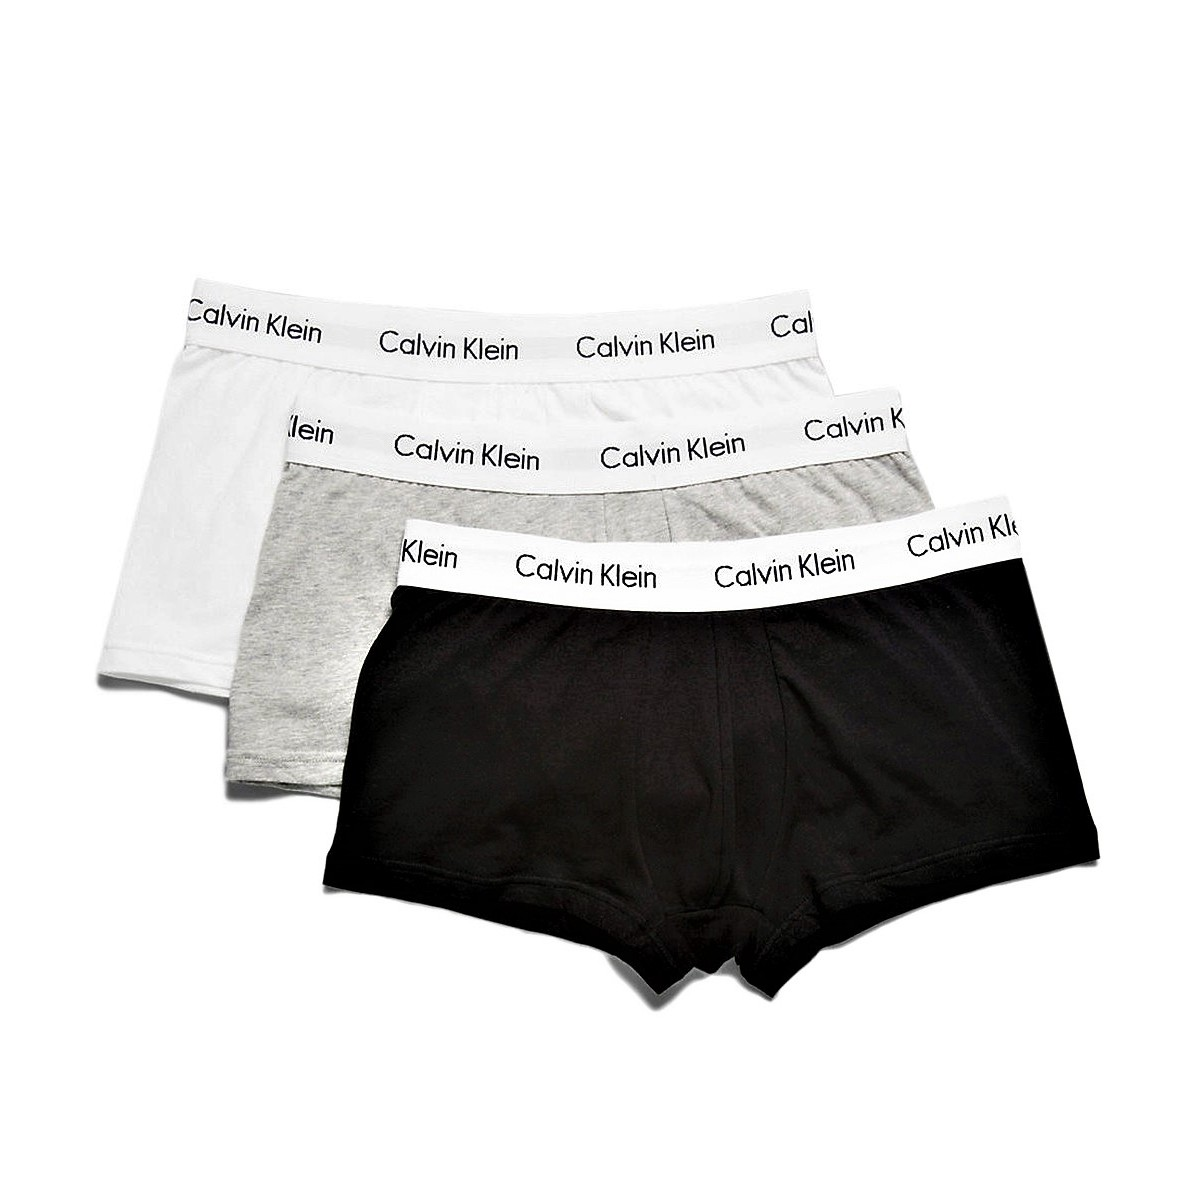 CALVIN KLEIN UNDERWEAR LOW RISE 3 PACK